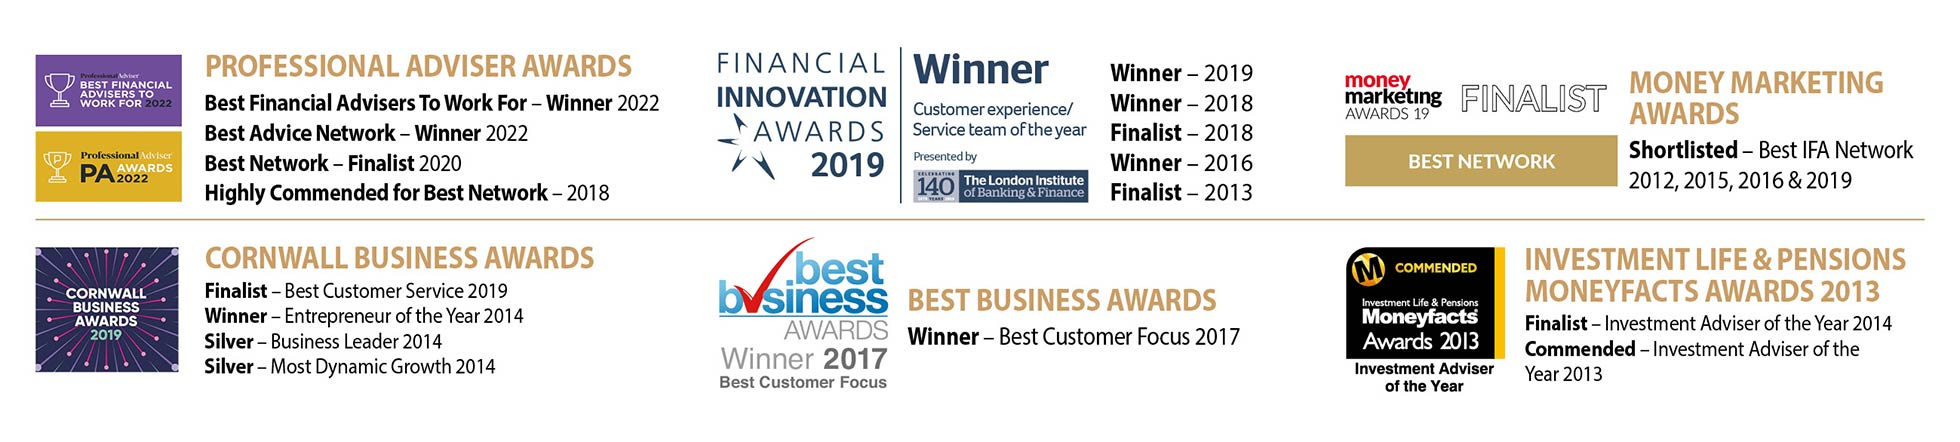 Winner and Finalists for Professional Adviser Awards, Financial Innovation Awards, Money Marketing Awards, Cornwall Business Awards, Best Business Awards, Investment Life & Pensions Moneyfacts Awards